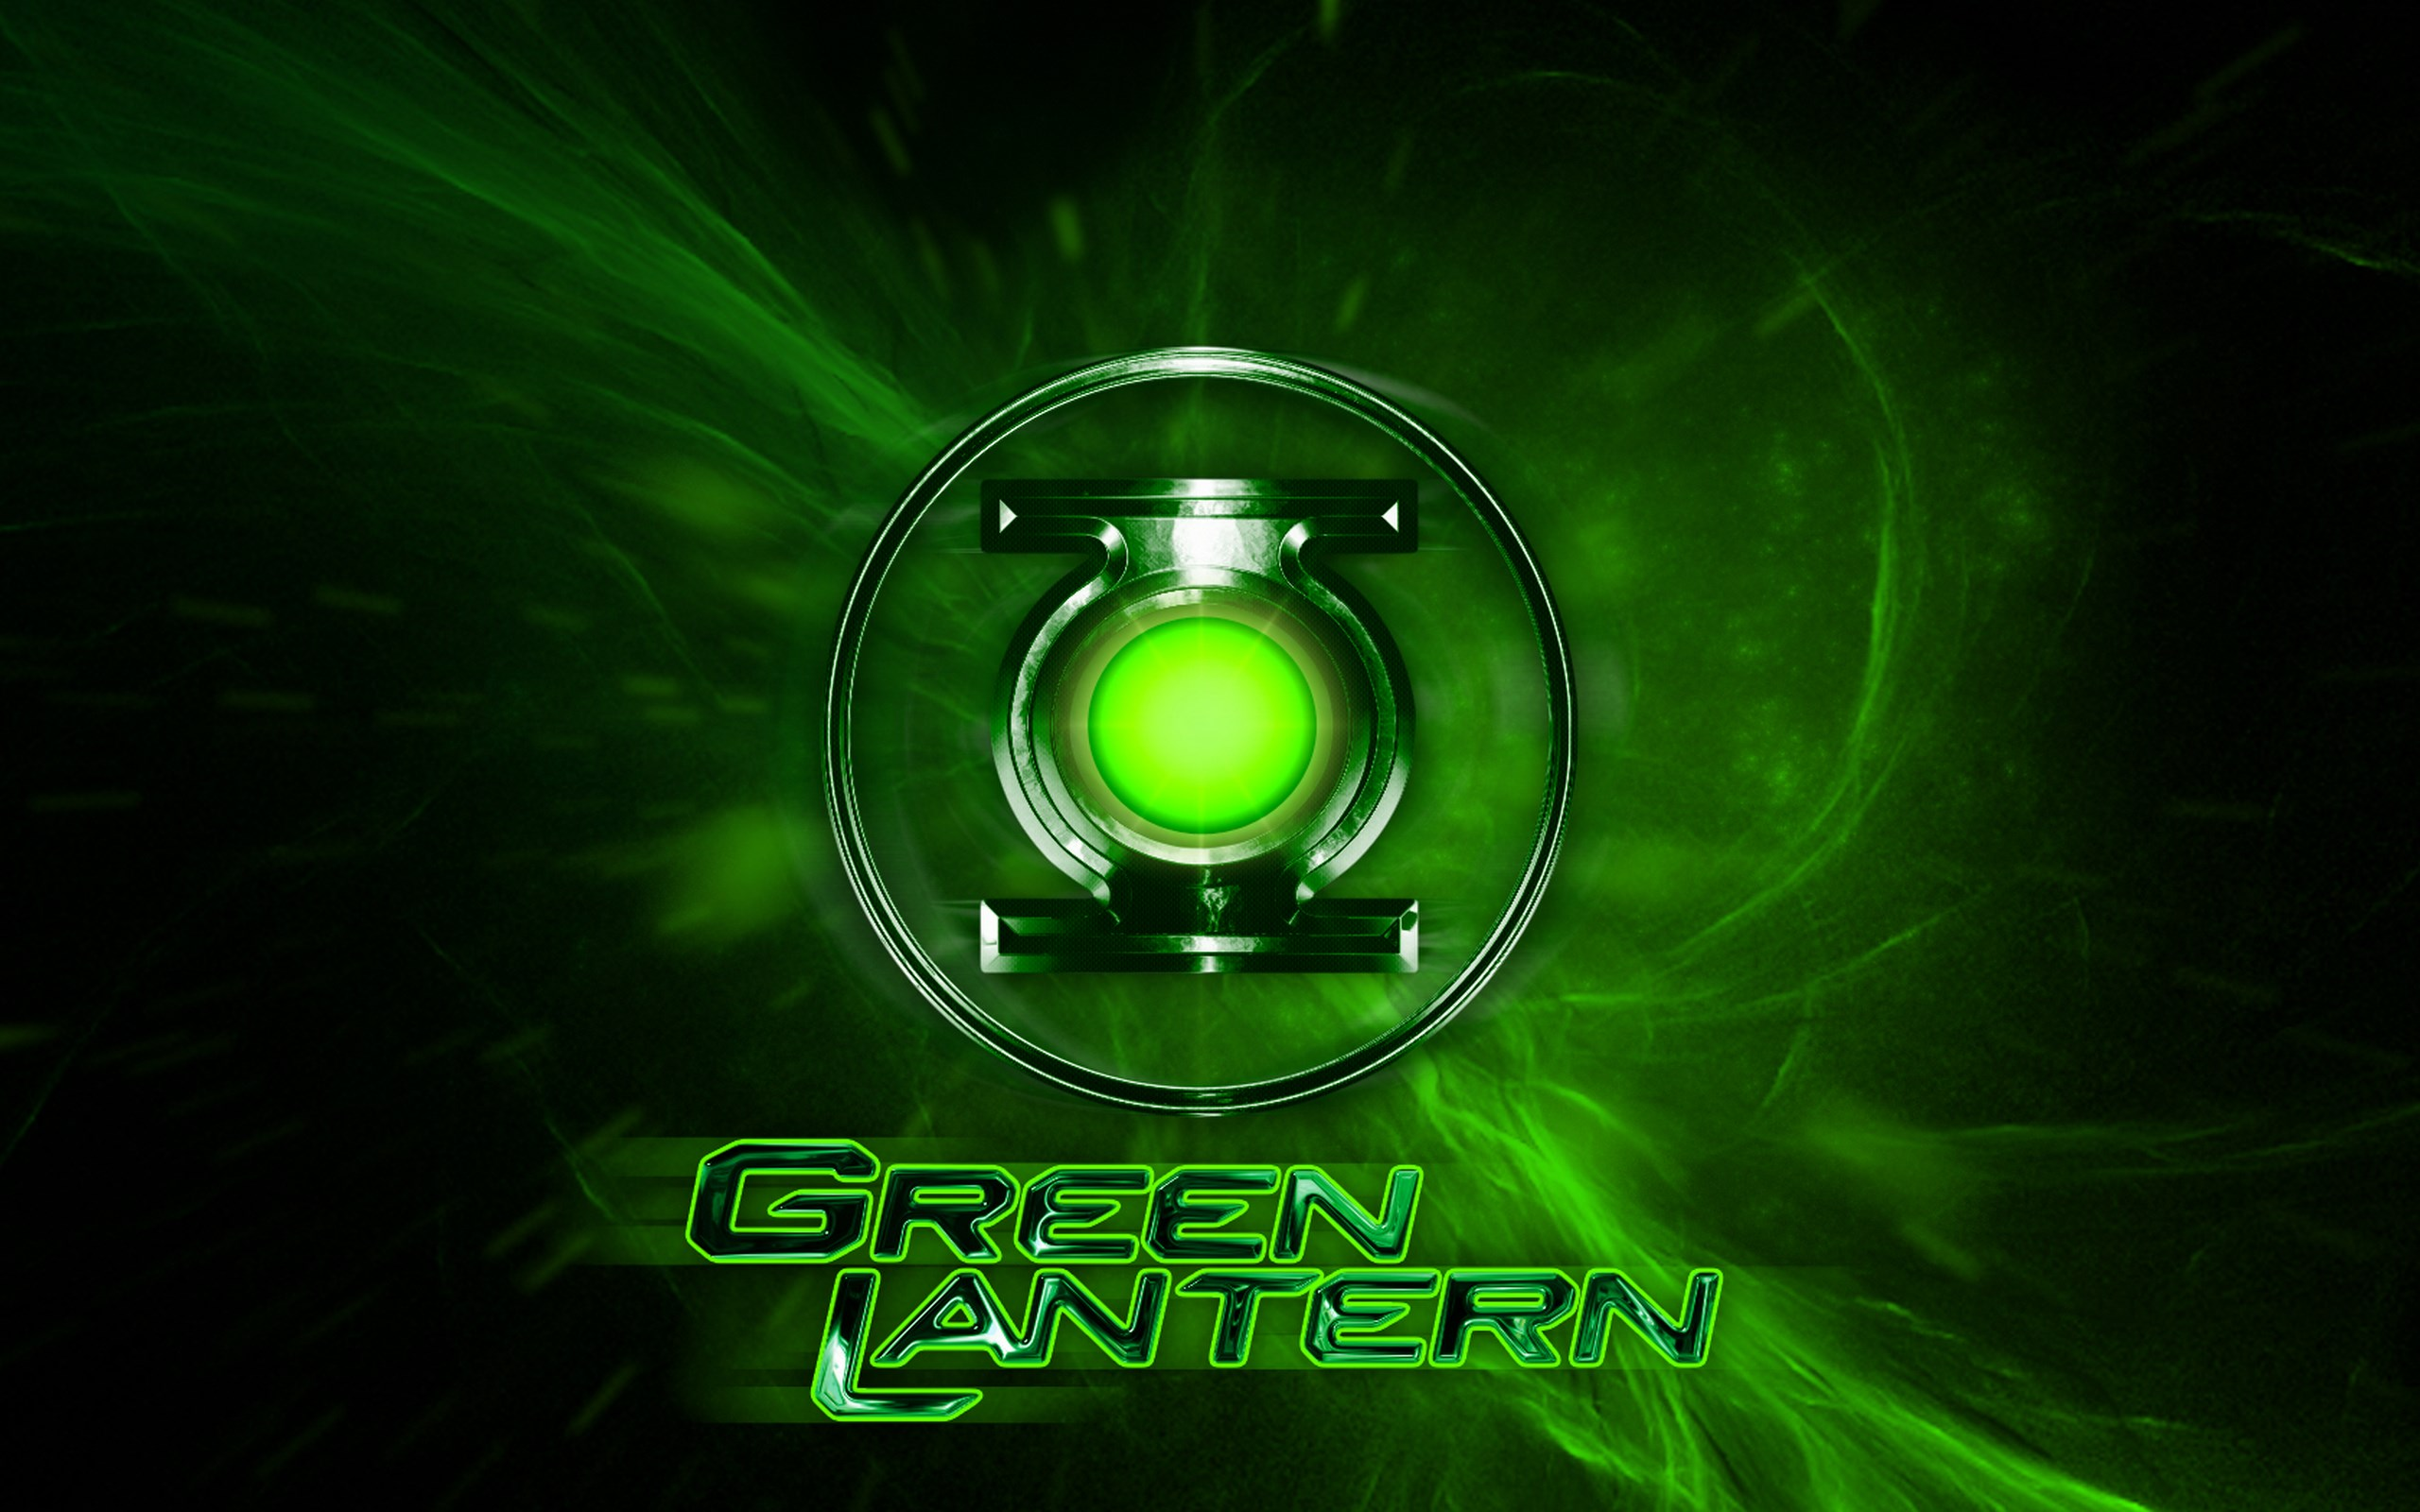 green lantern hal jordan logo dc comics latest hd wallpaper